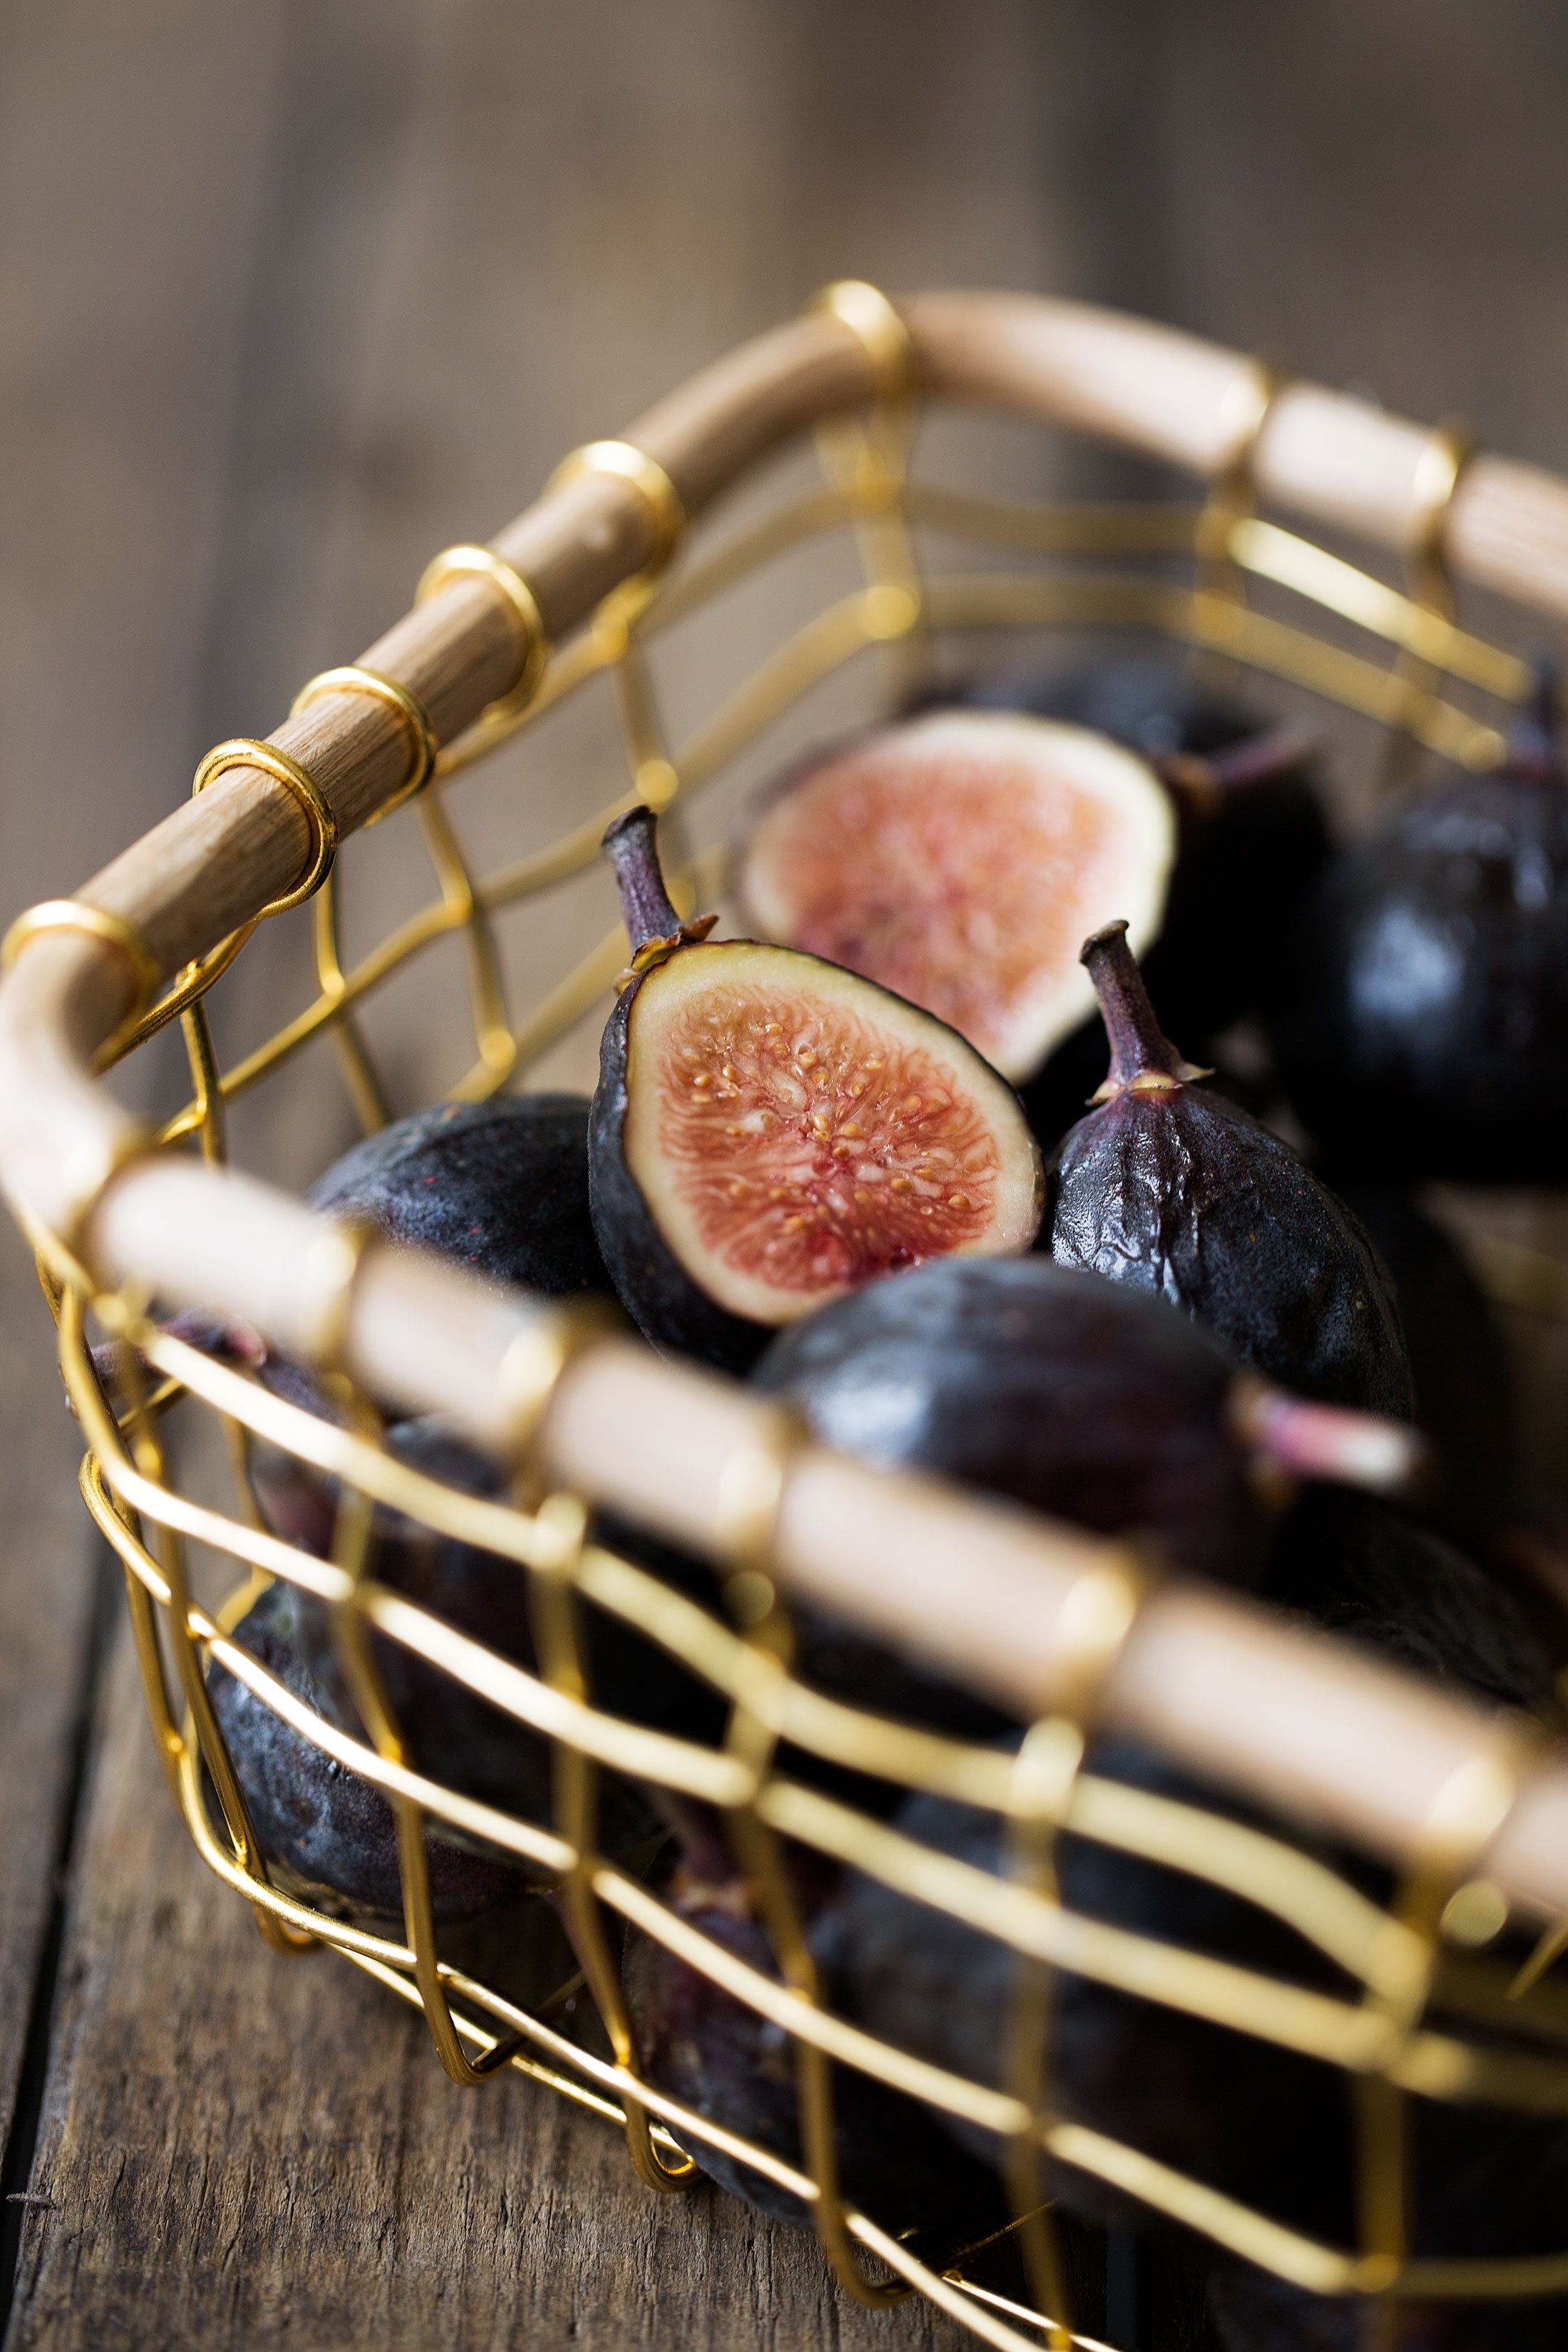 black mission figs cooking with cocktail rings